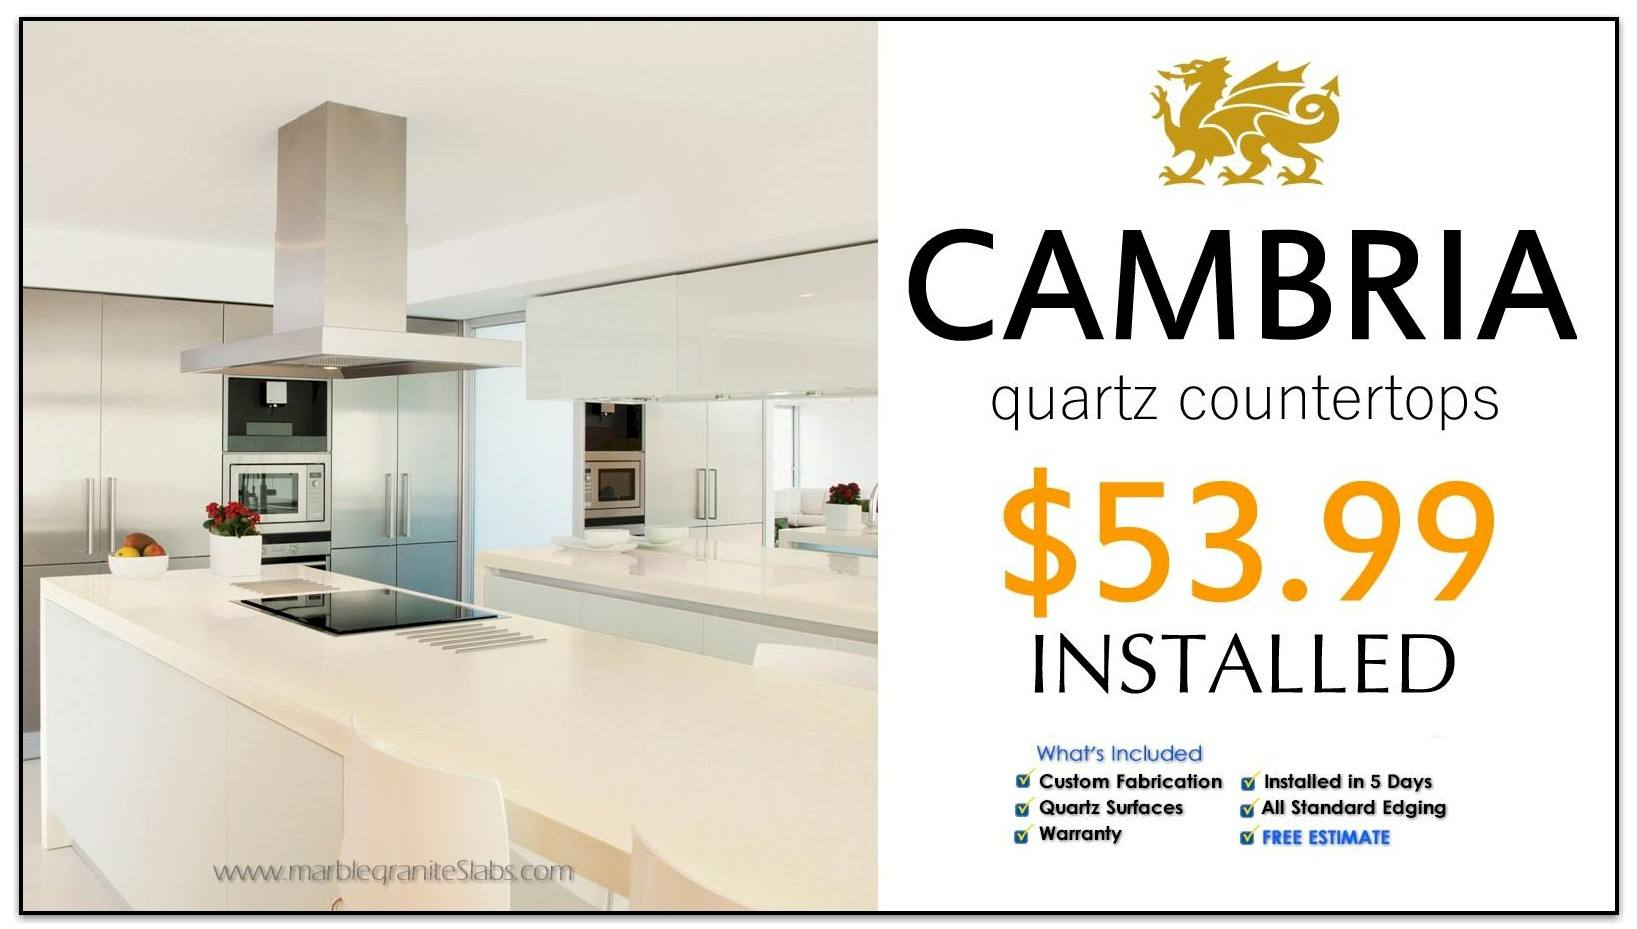 Marble Granite Slabs Countertops Fabrication Installation Coupons Near Me In Sun Valley 8coupons